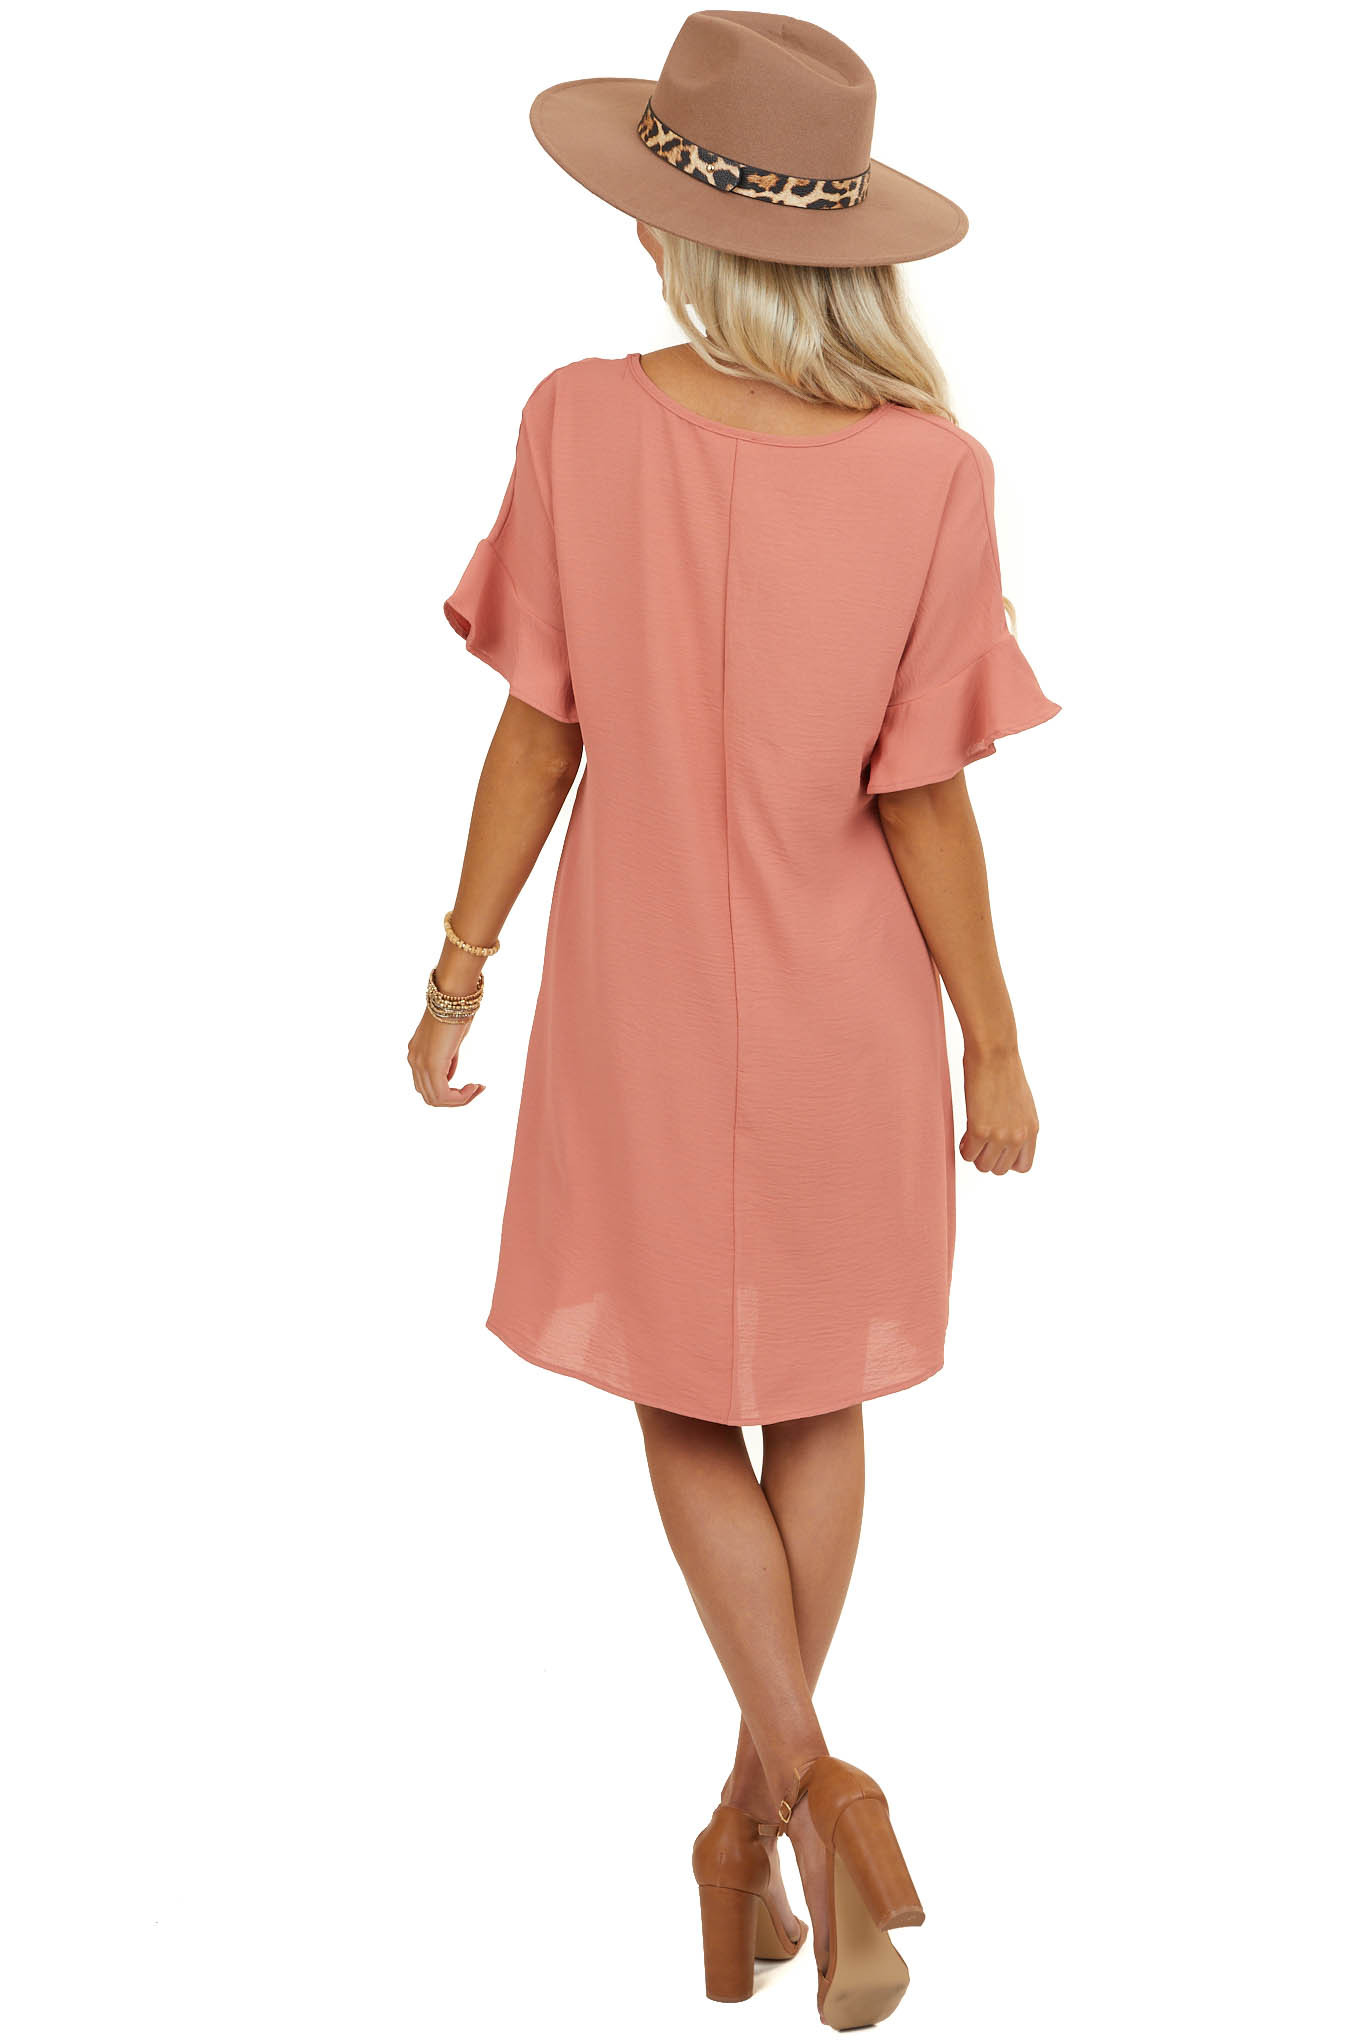 Terracotta Short Dress with V Neck and Short Ruffle Sleeves